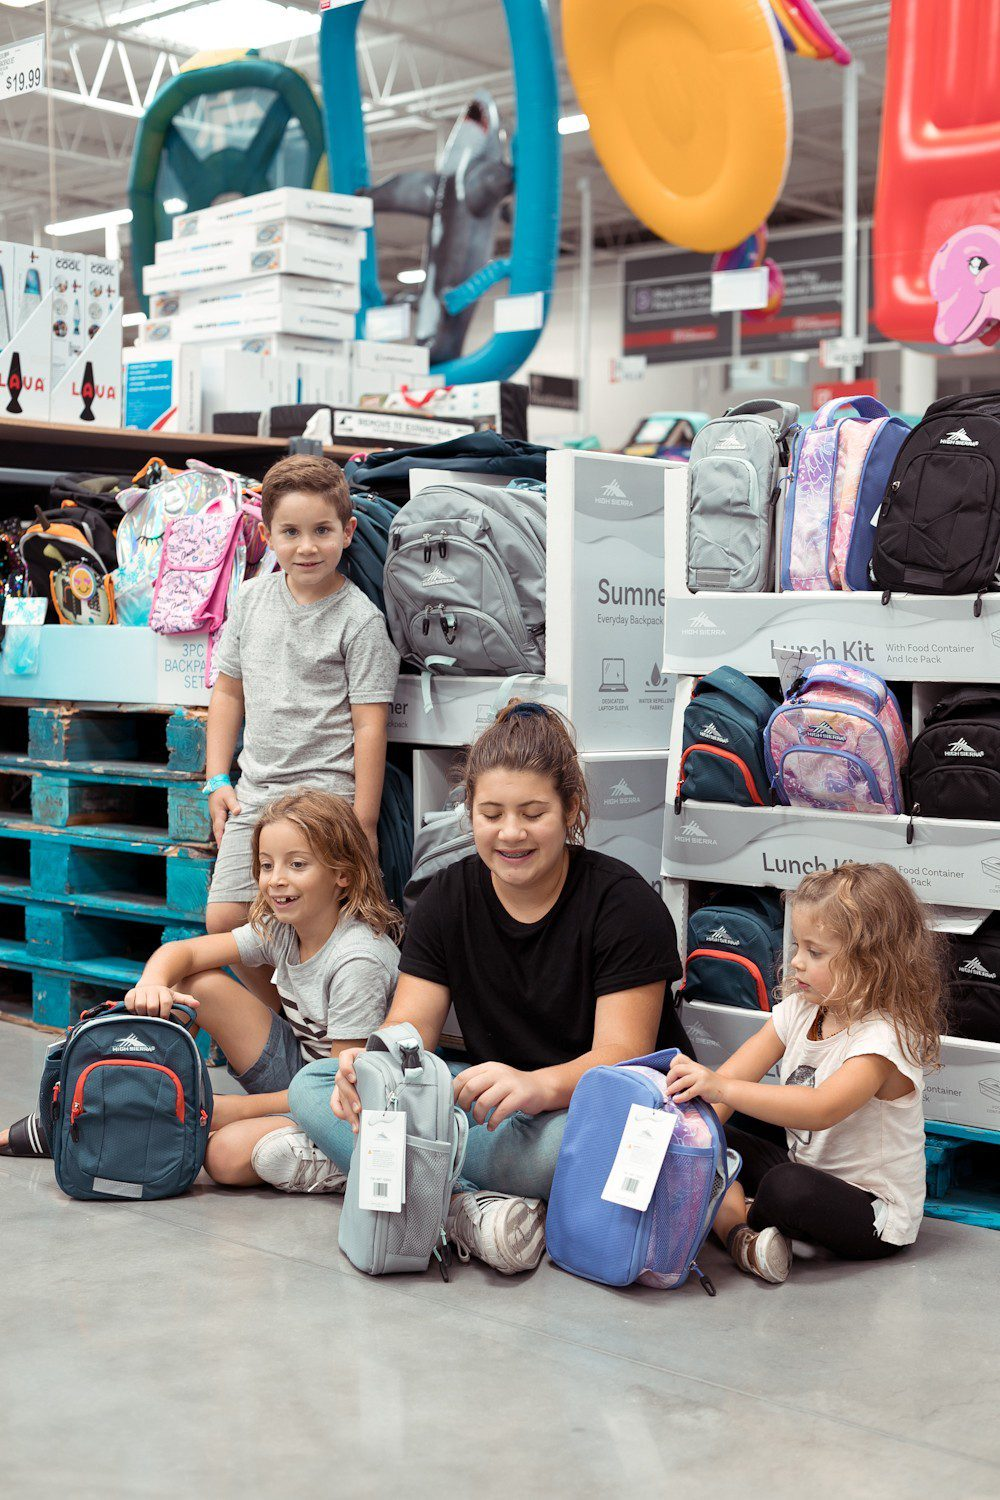 5 Sensational Strategies to Make Getting Ready for School Easy | How to Get Ready for School: 5 Sensational Strategies to Make Easy on your Family by popular Tampa life and style blog, Fresh Mommy: image of 4 young kids sitting in front of a backpack and lunch box display.